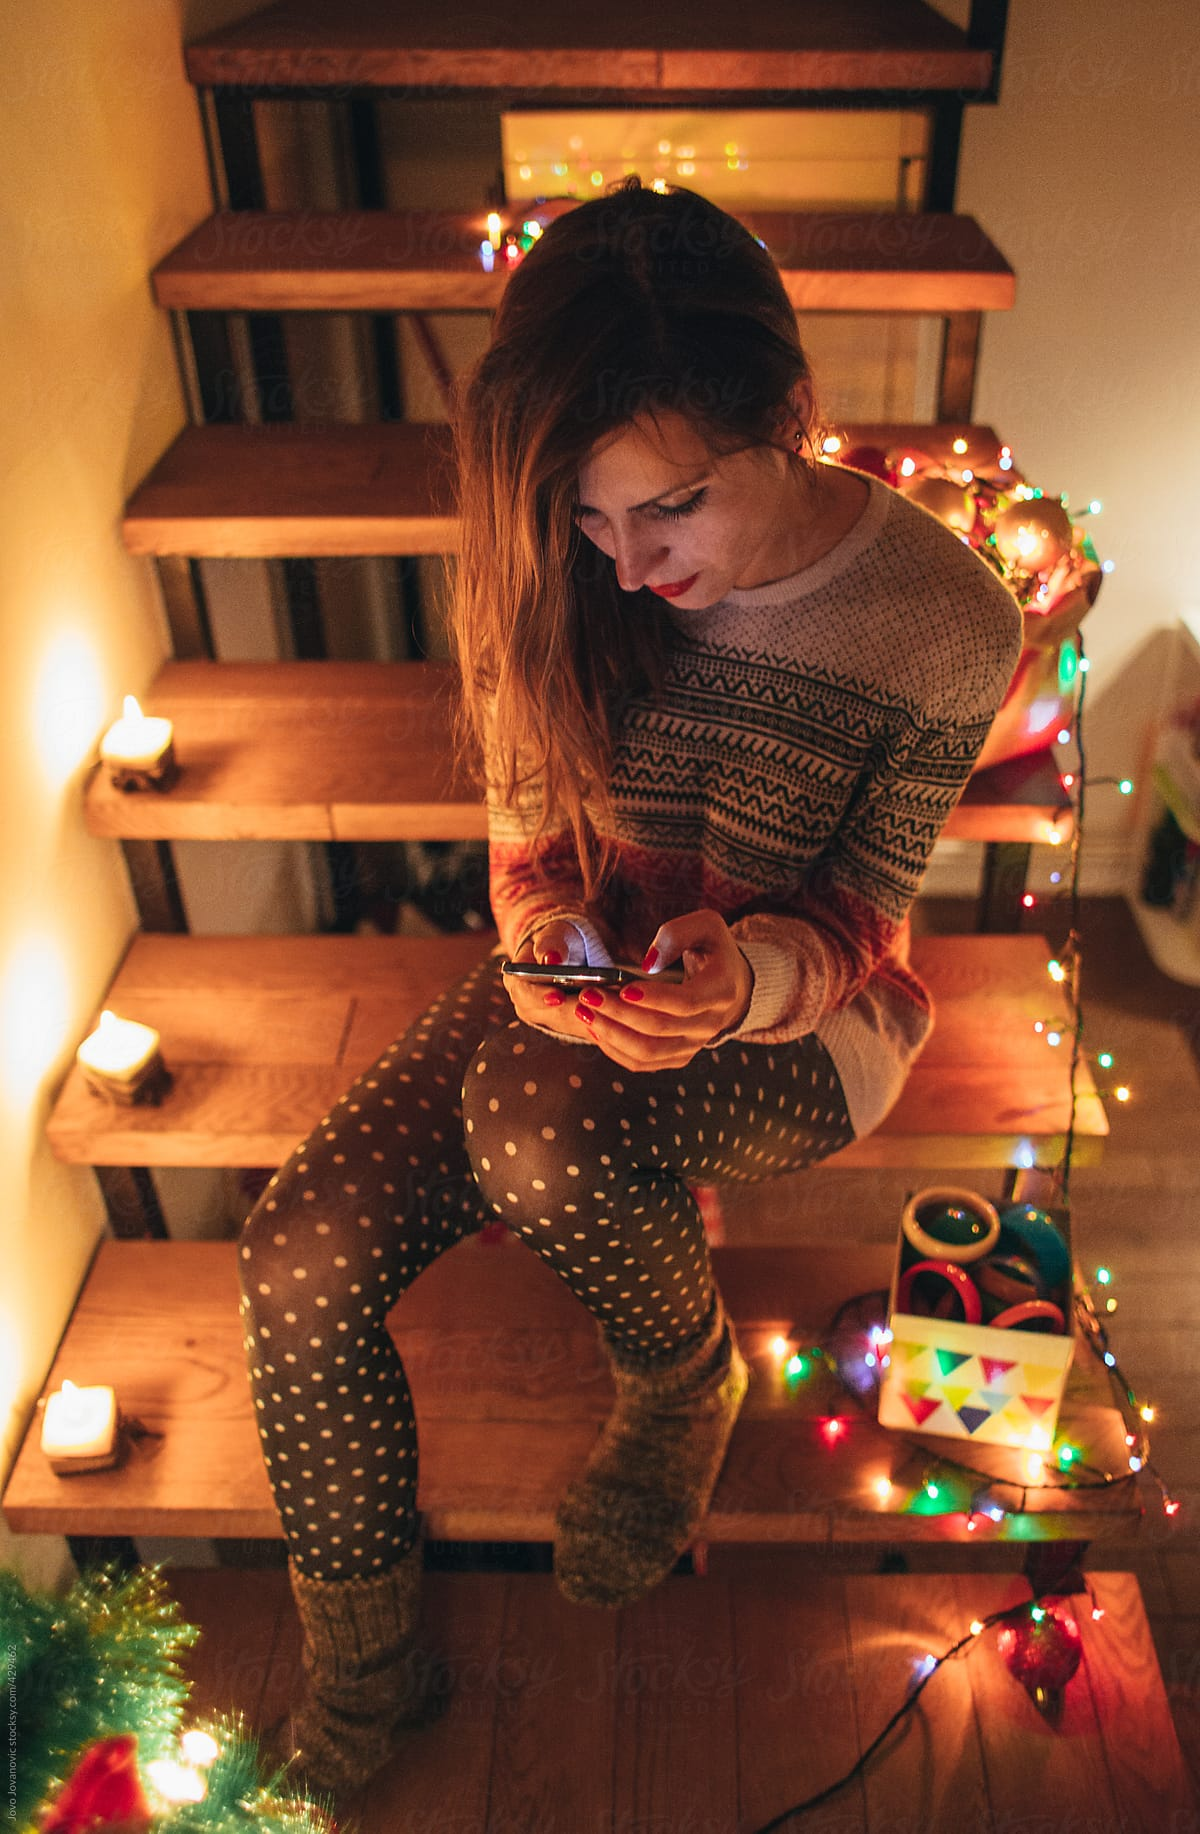 Alone On Christmas.Woman Sitting Alone On Christmas Night And Using Her Phone